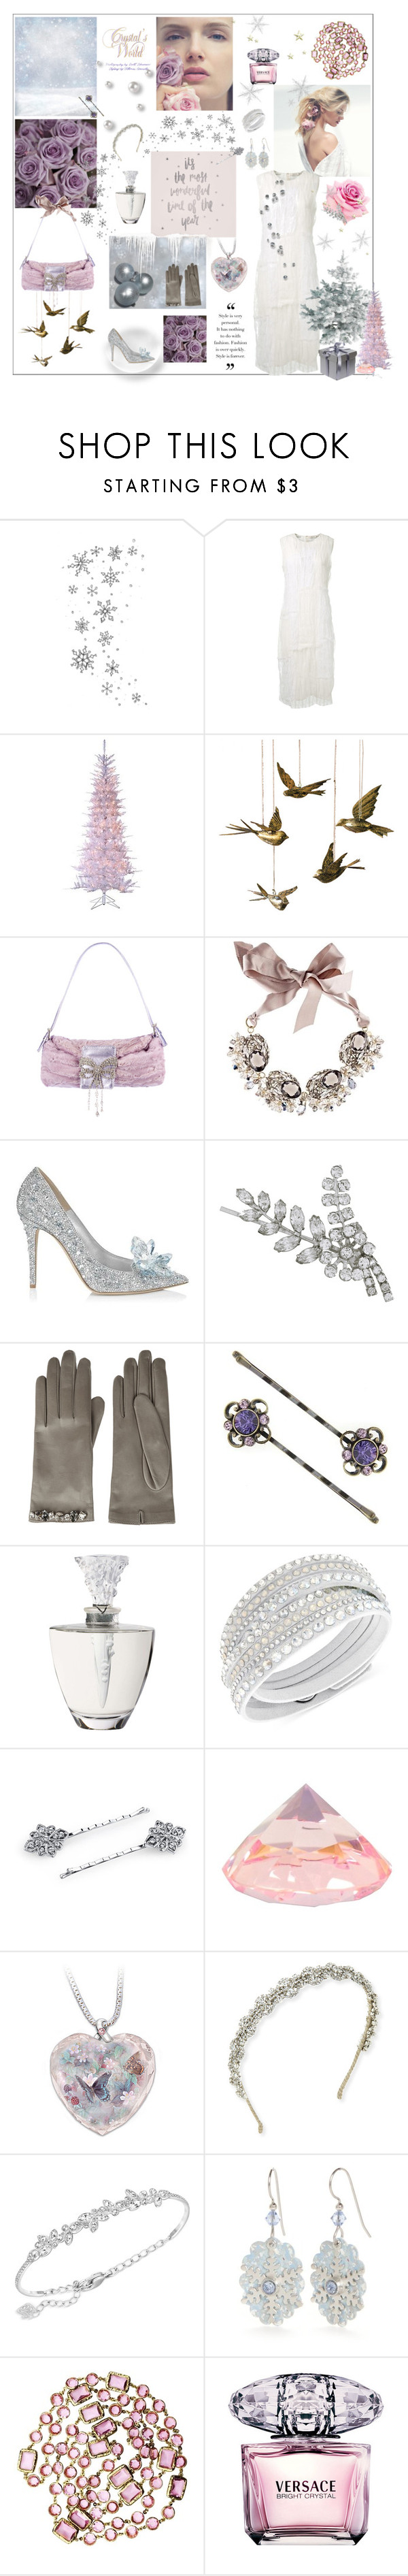 """Crystal Blossom "" by annia-radanovic ❤ liked on Polyvore featuring Ralph Lauren, Nina Ricci, Dot & Bo, Gabriele Frantzen, Jimmy Choo, Jennifer Behr, Gucci, 1928, Lalique and Swarovski"